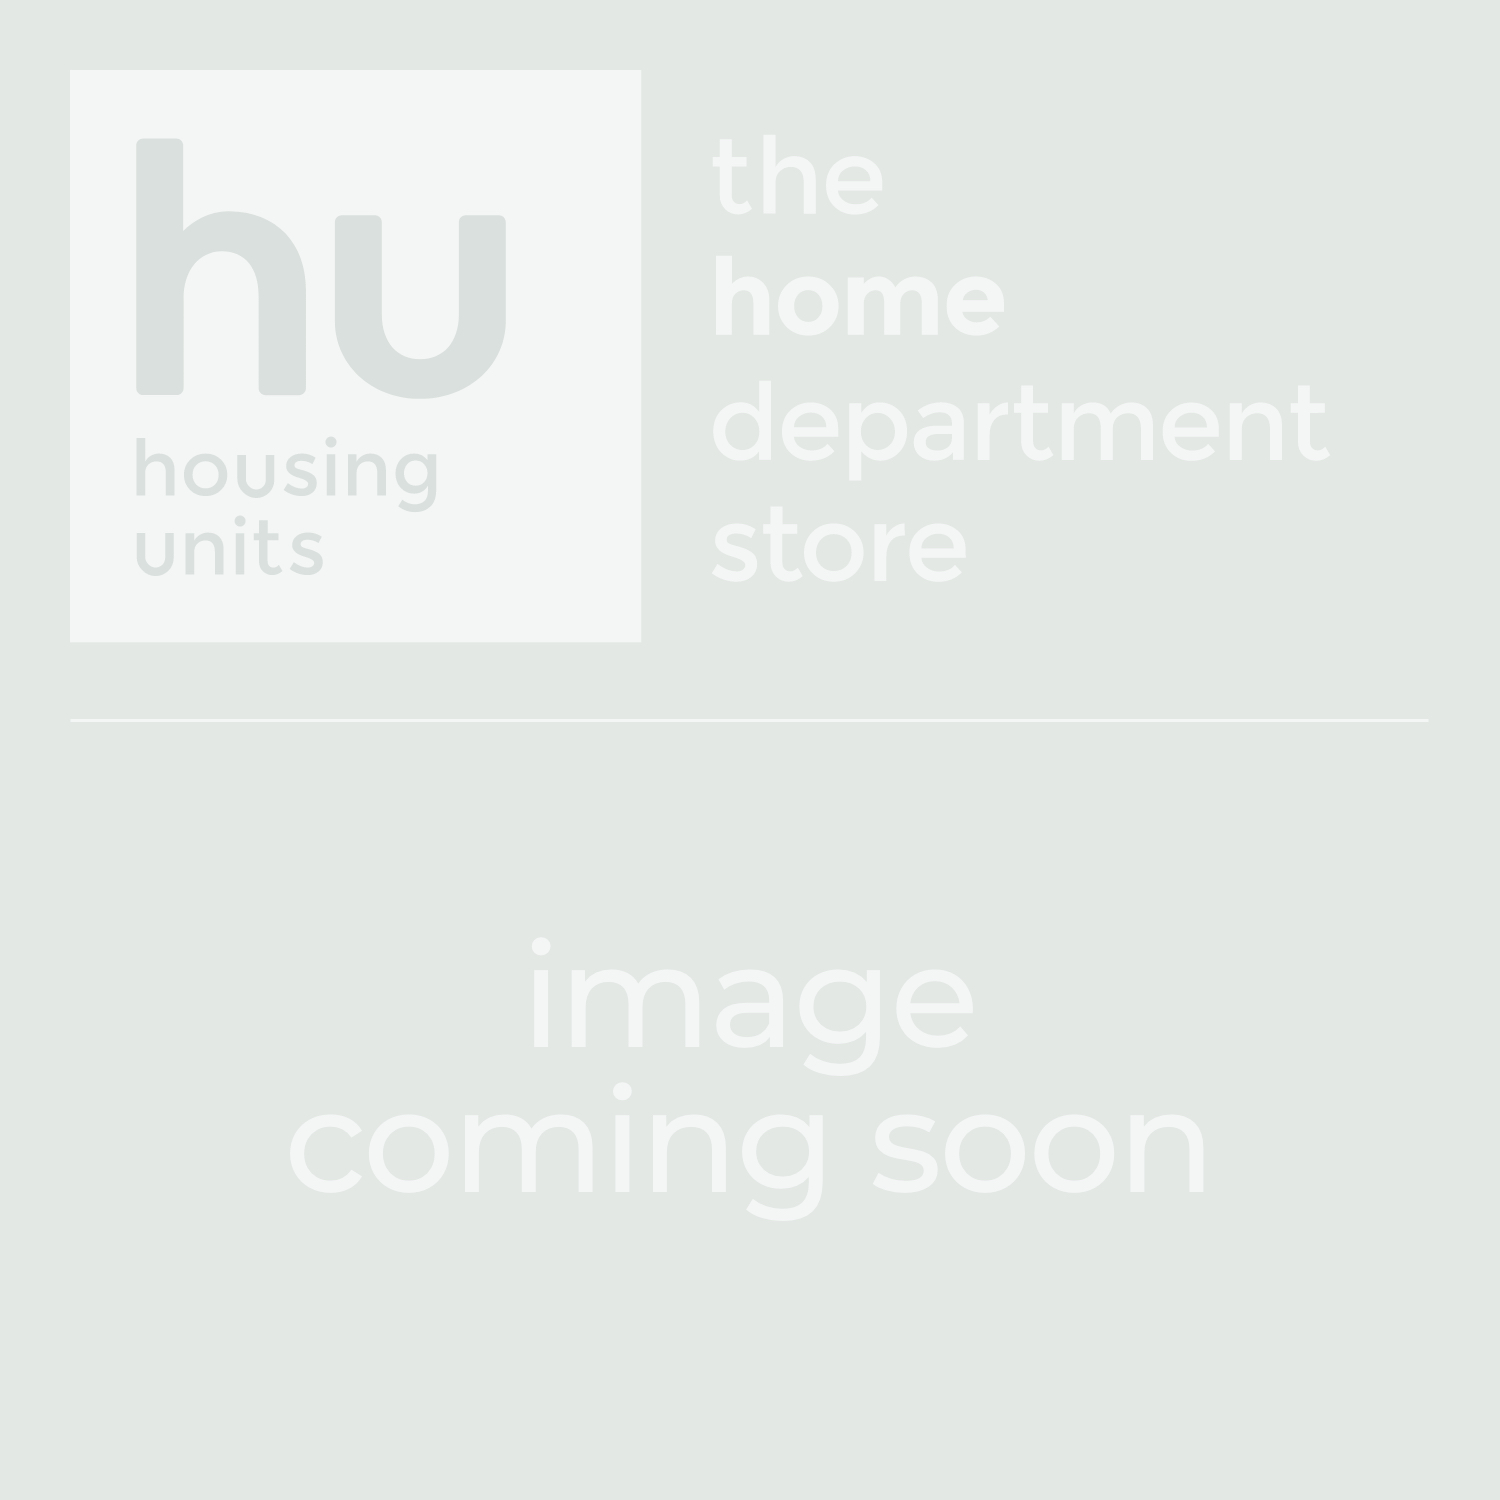 Celine Crystal & Chrome 6 Light Pendant | Housing Units